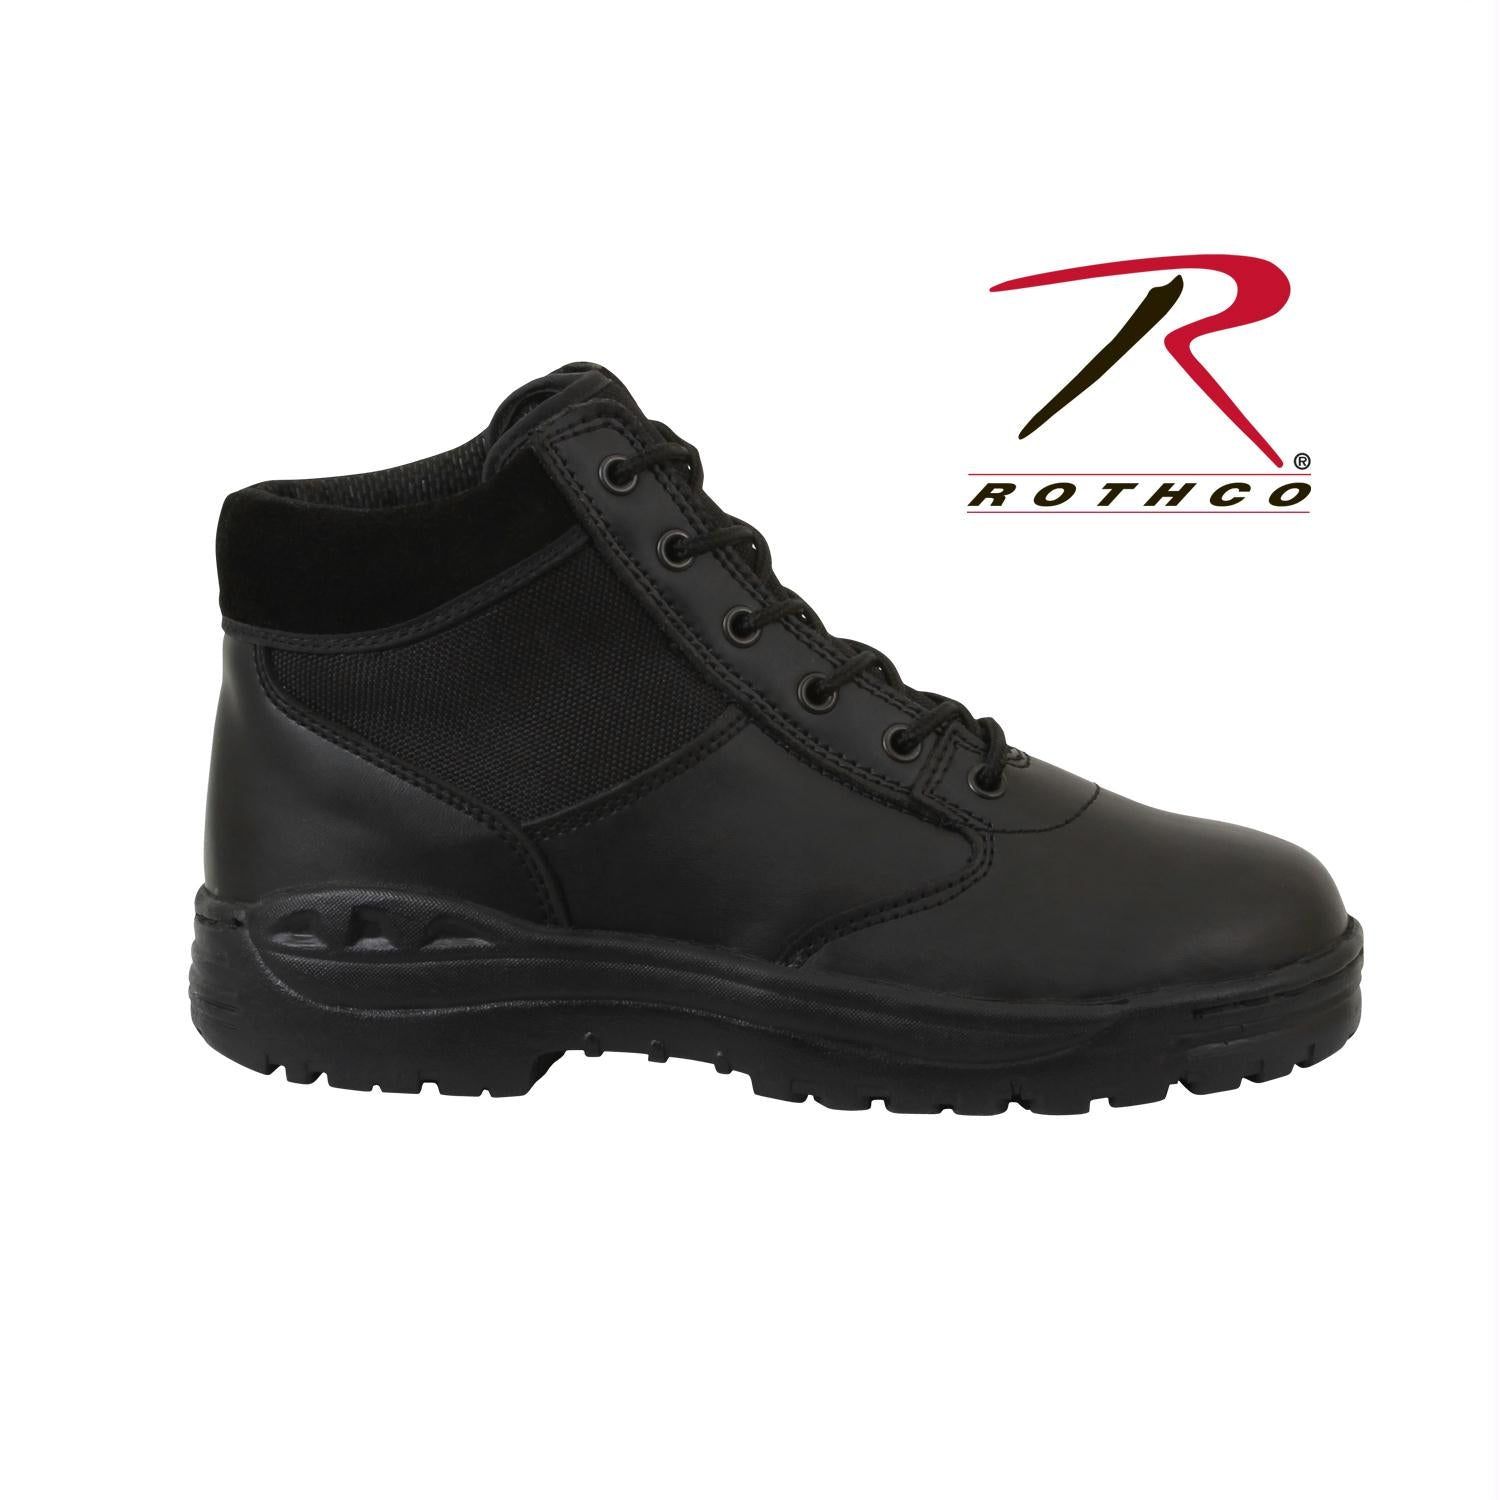 Rothco Forced Entry Security Boot / 6'' - 10.5